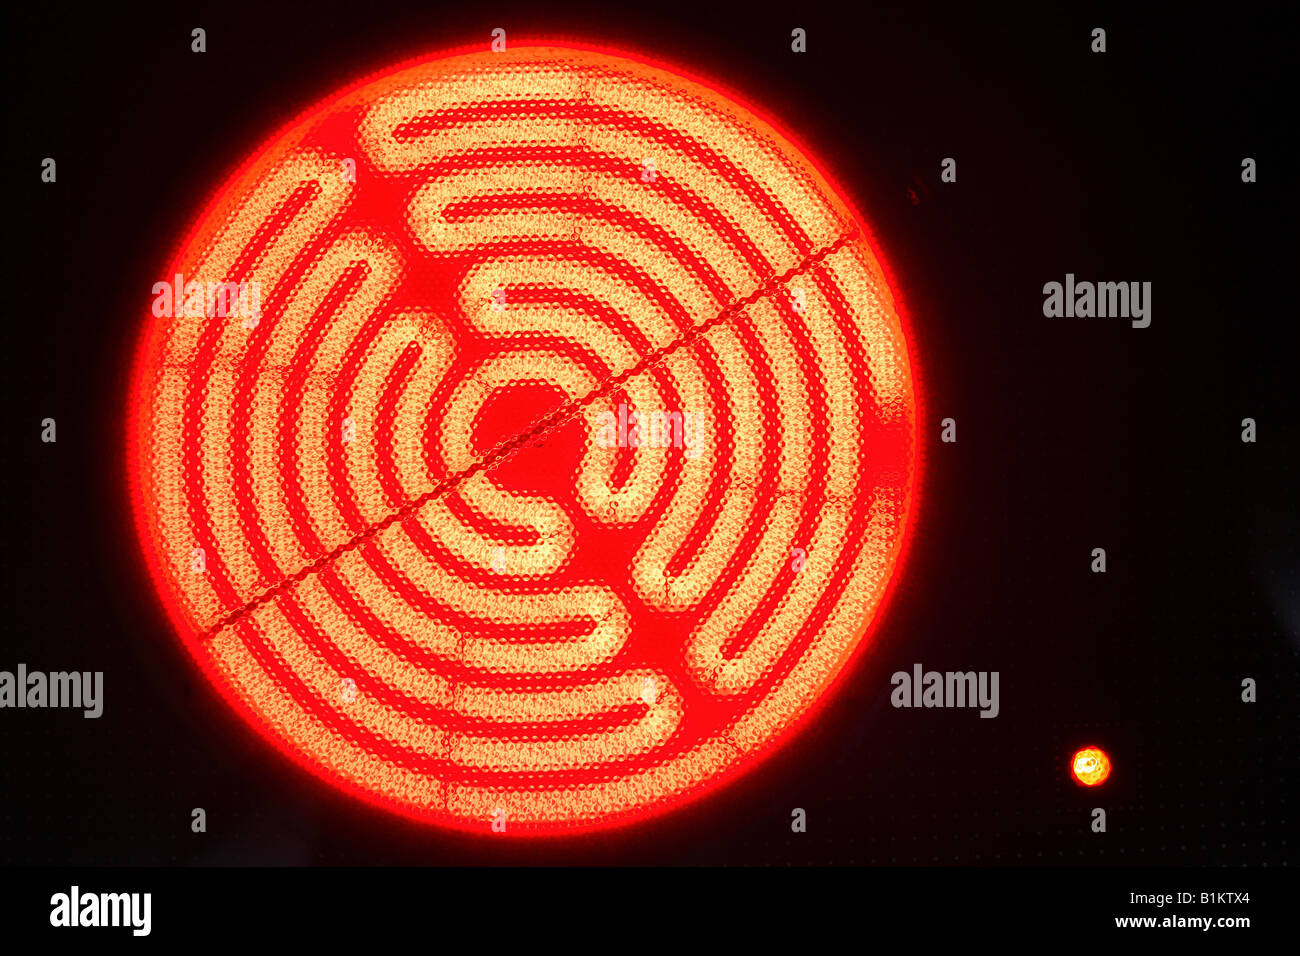 Burning hotplate of an induction cooker - Stock Image